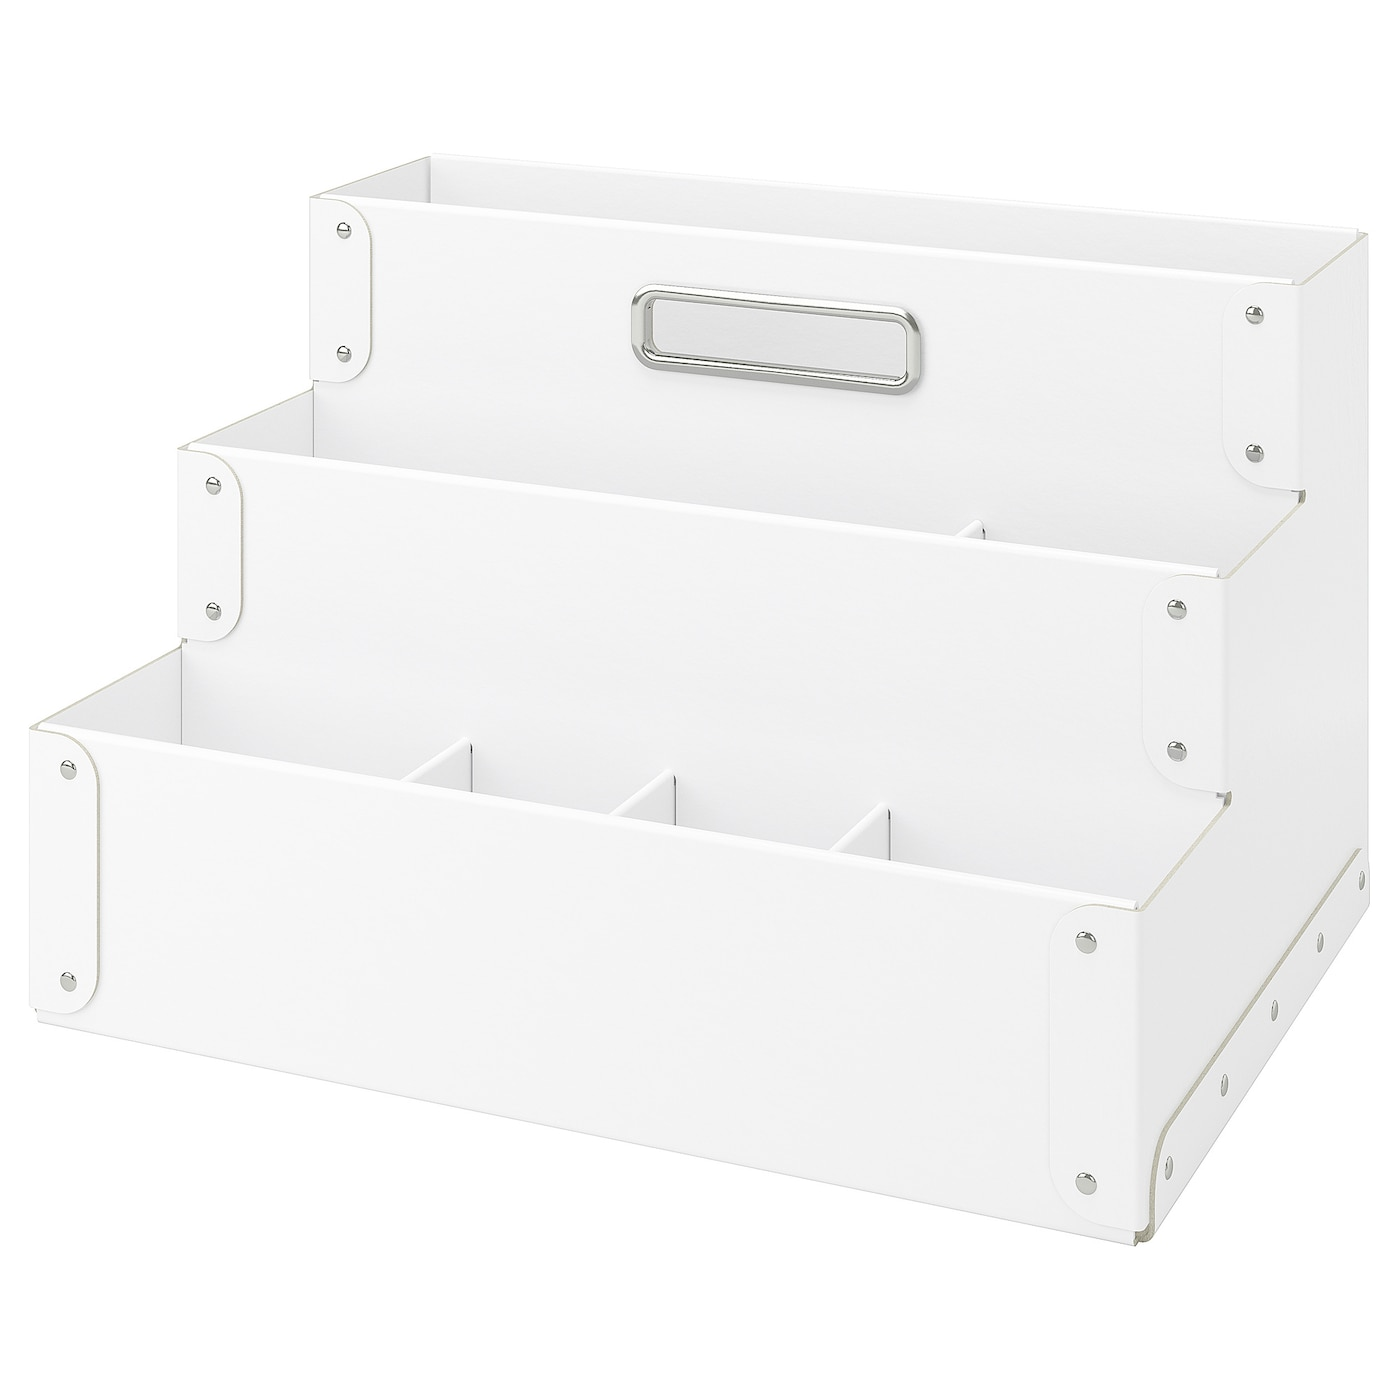 IKEA FJÄLLA desk organiser Easy to pull out and carry as it has a handle.